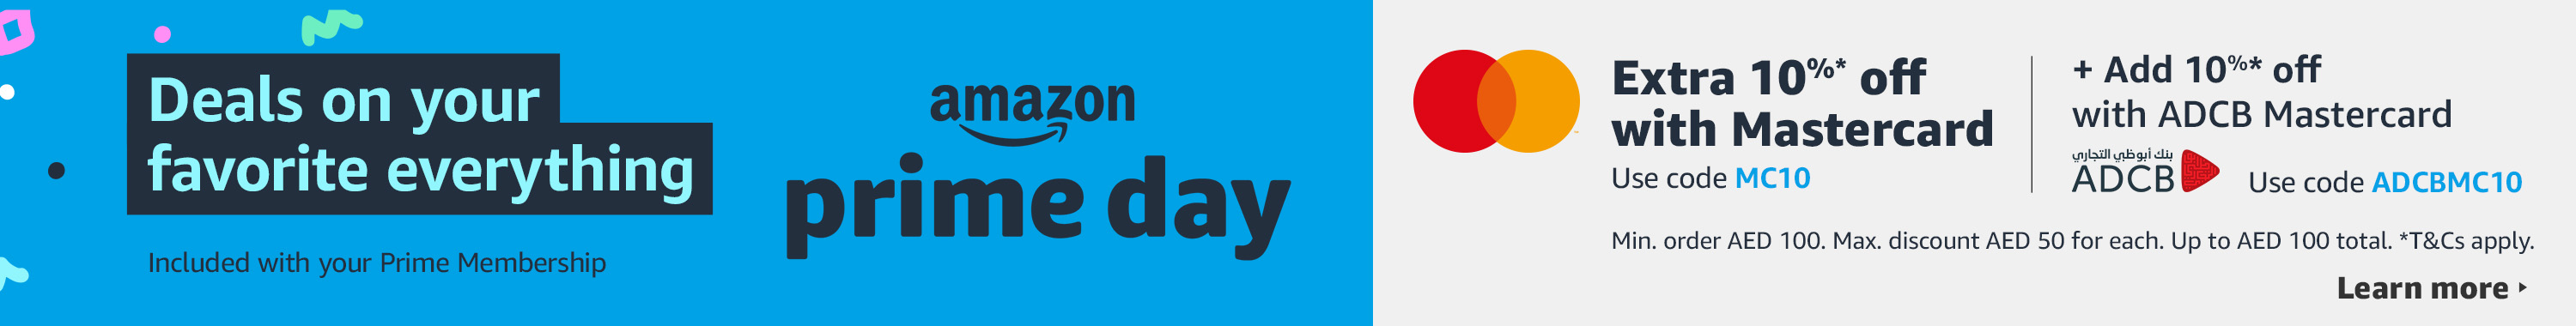 Amazon Prime Day. Extra 10% off with Mastercard, Further 10% off with ADCB Mastercard